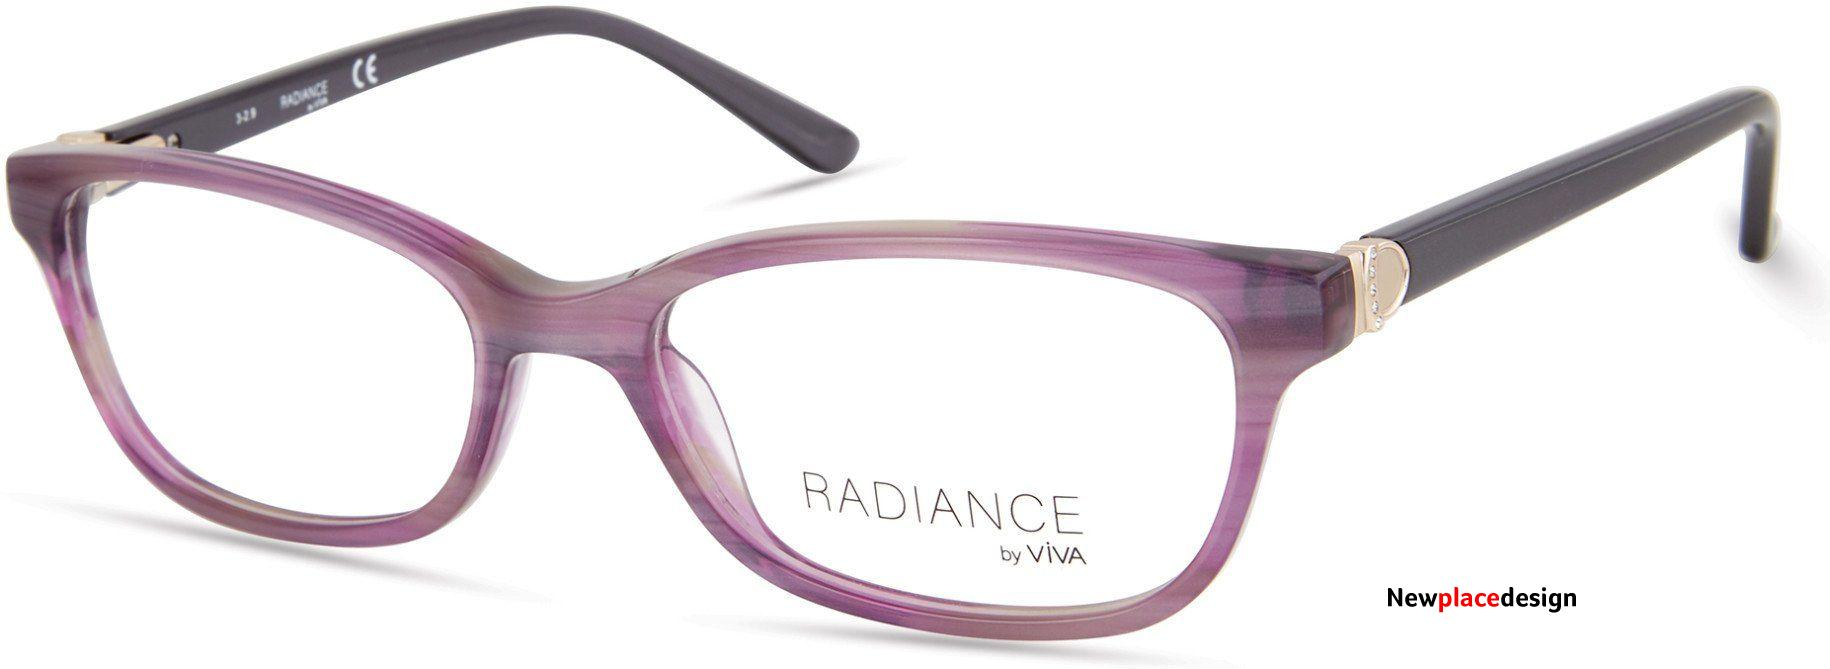 Viva VV8007 Oval Eyeglasses For Women - 54-17-145 / 080 - Lilac